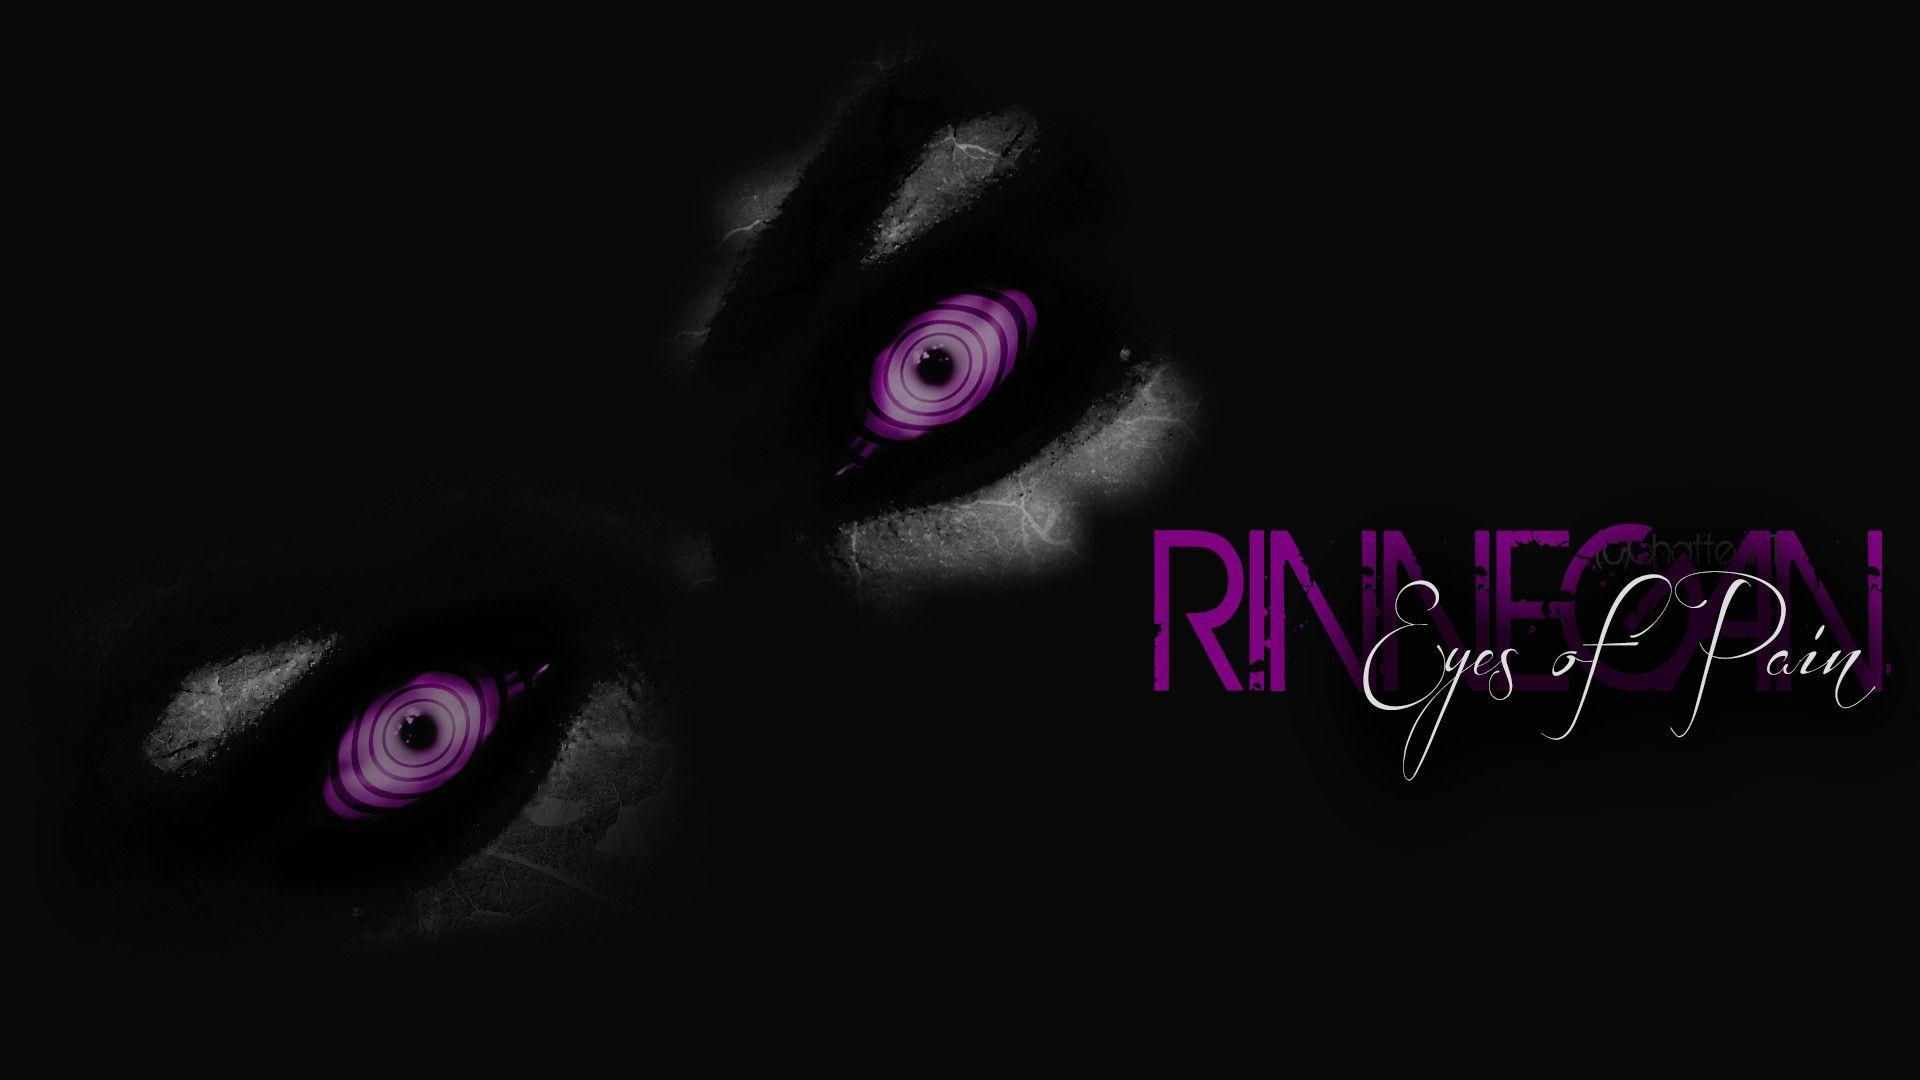 Rinnegan: Eyes of Pain by ChatteArt